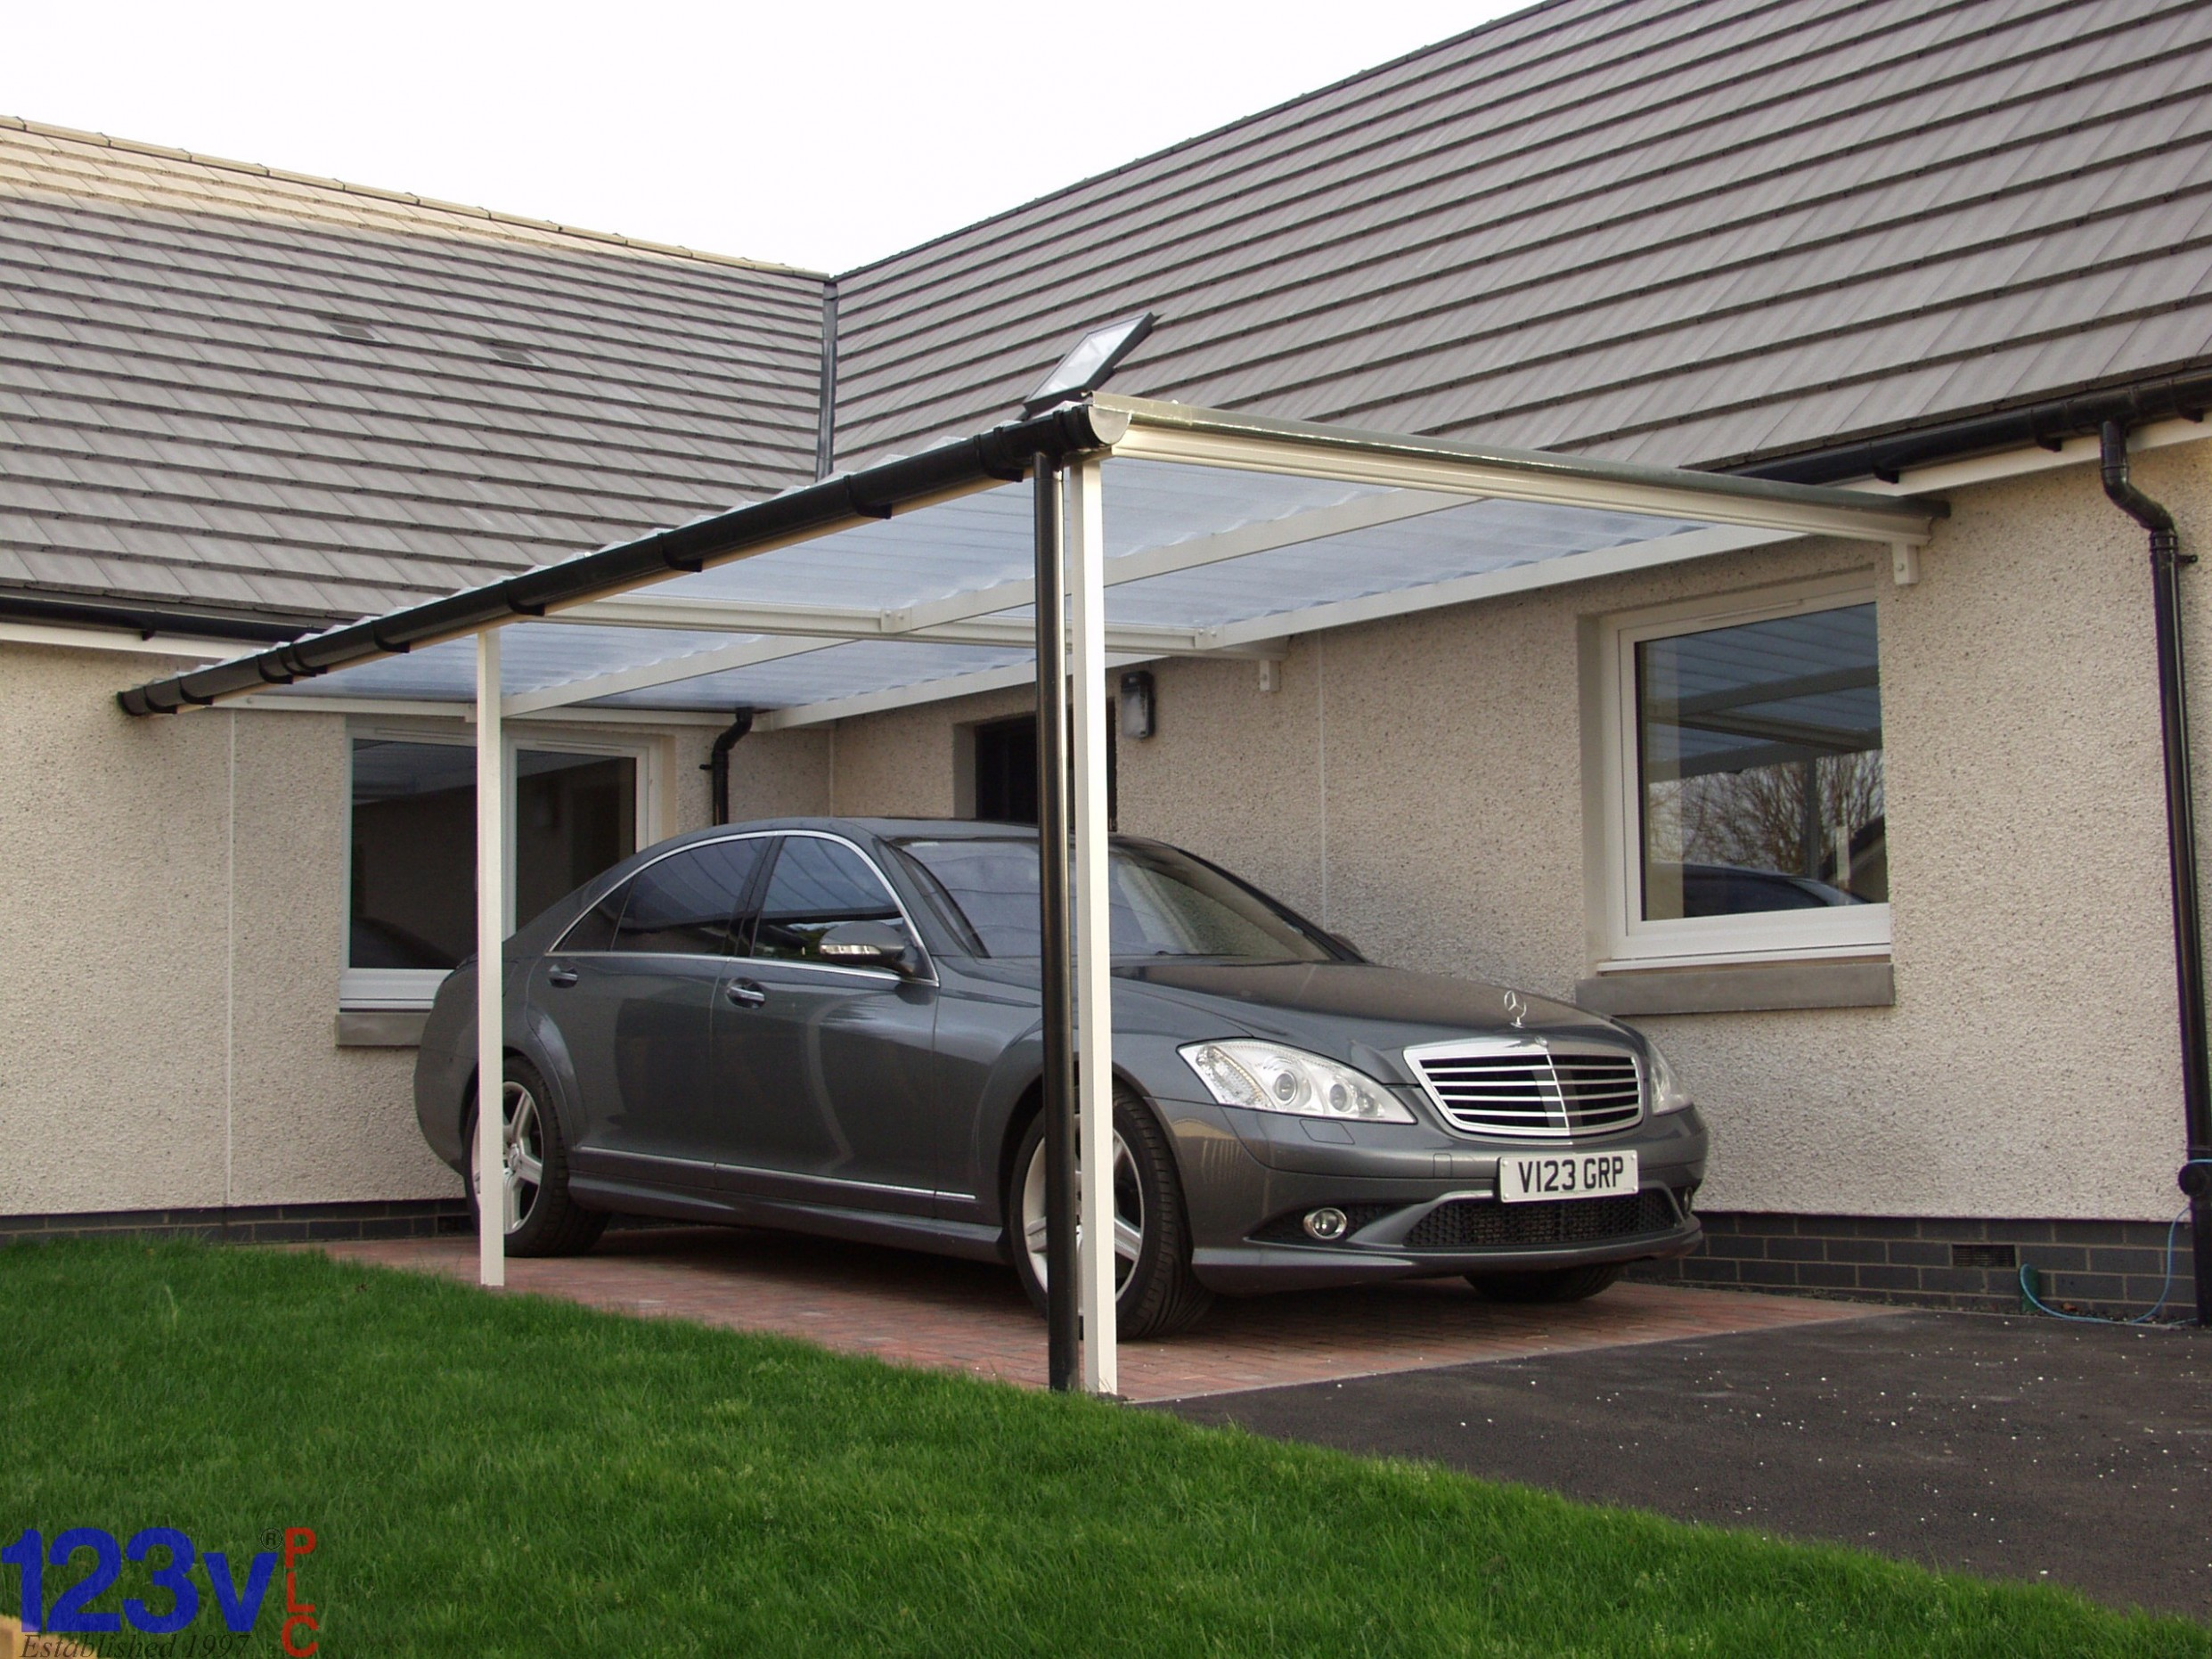 1517768120-install-the-best-carport-canopy-to-house-your-car-best-carport.jpg